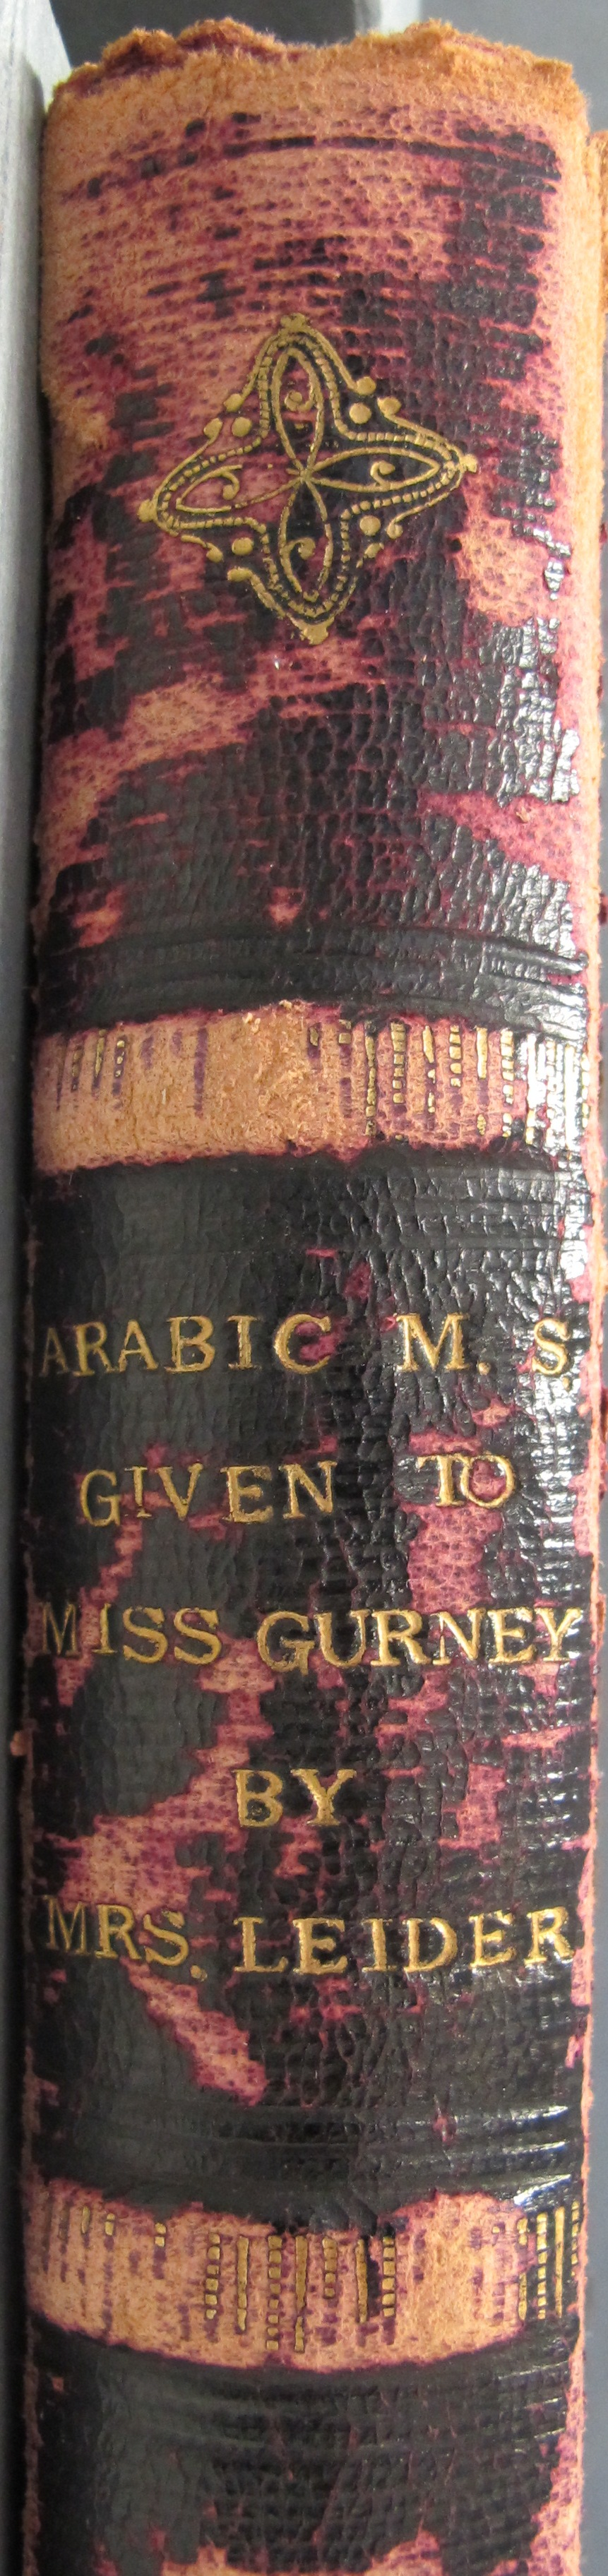 """Spine imprinted: """"ARABIC M.S. GIVEN TO MISS GURNEY BY MRS. LEIDER"""""""